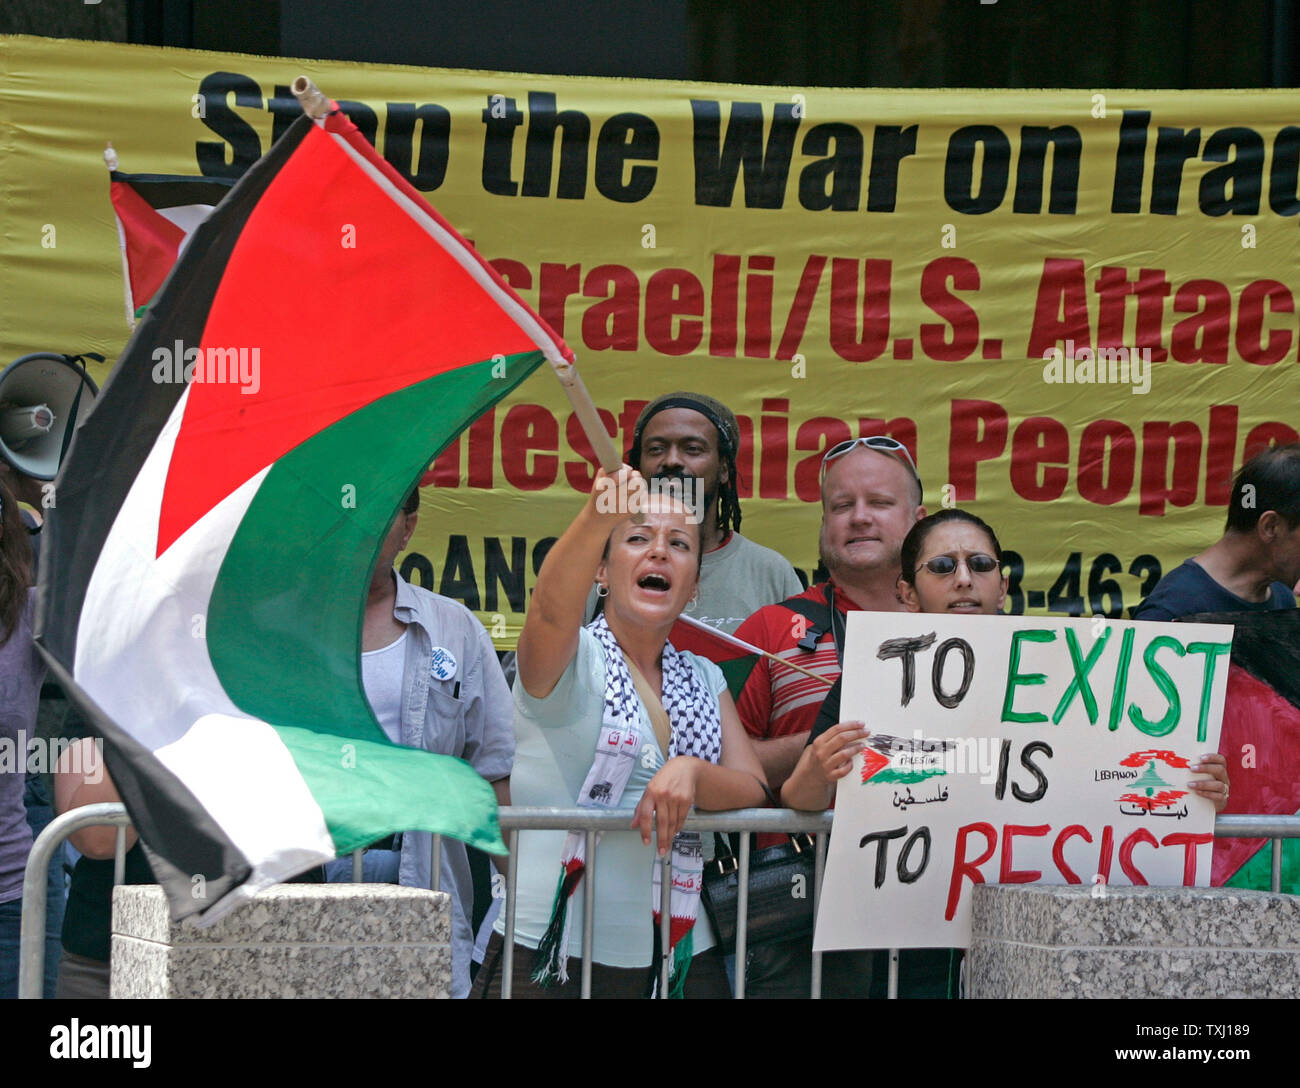 Israel Supporters Stock Photos & Israel Supporters Stock Images - Alamy